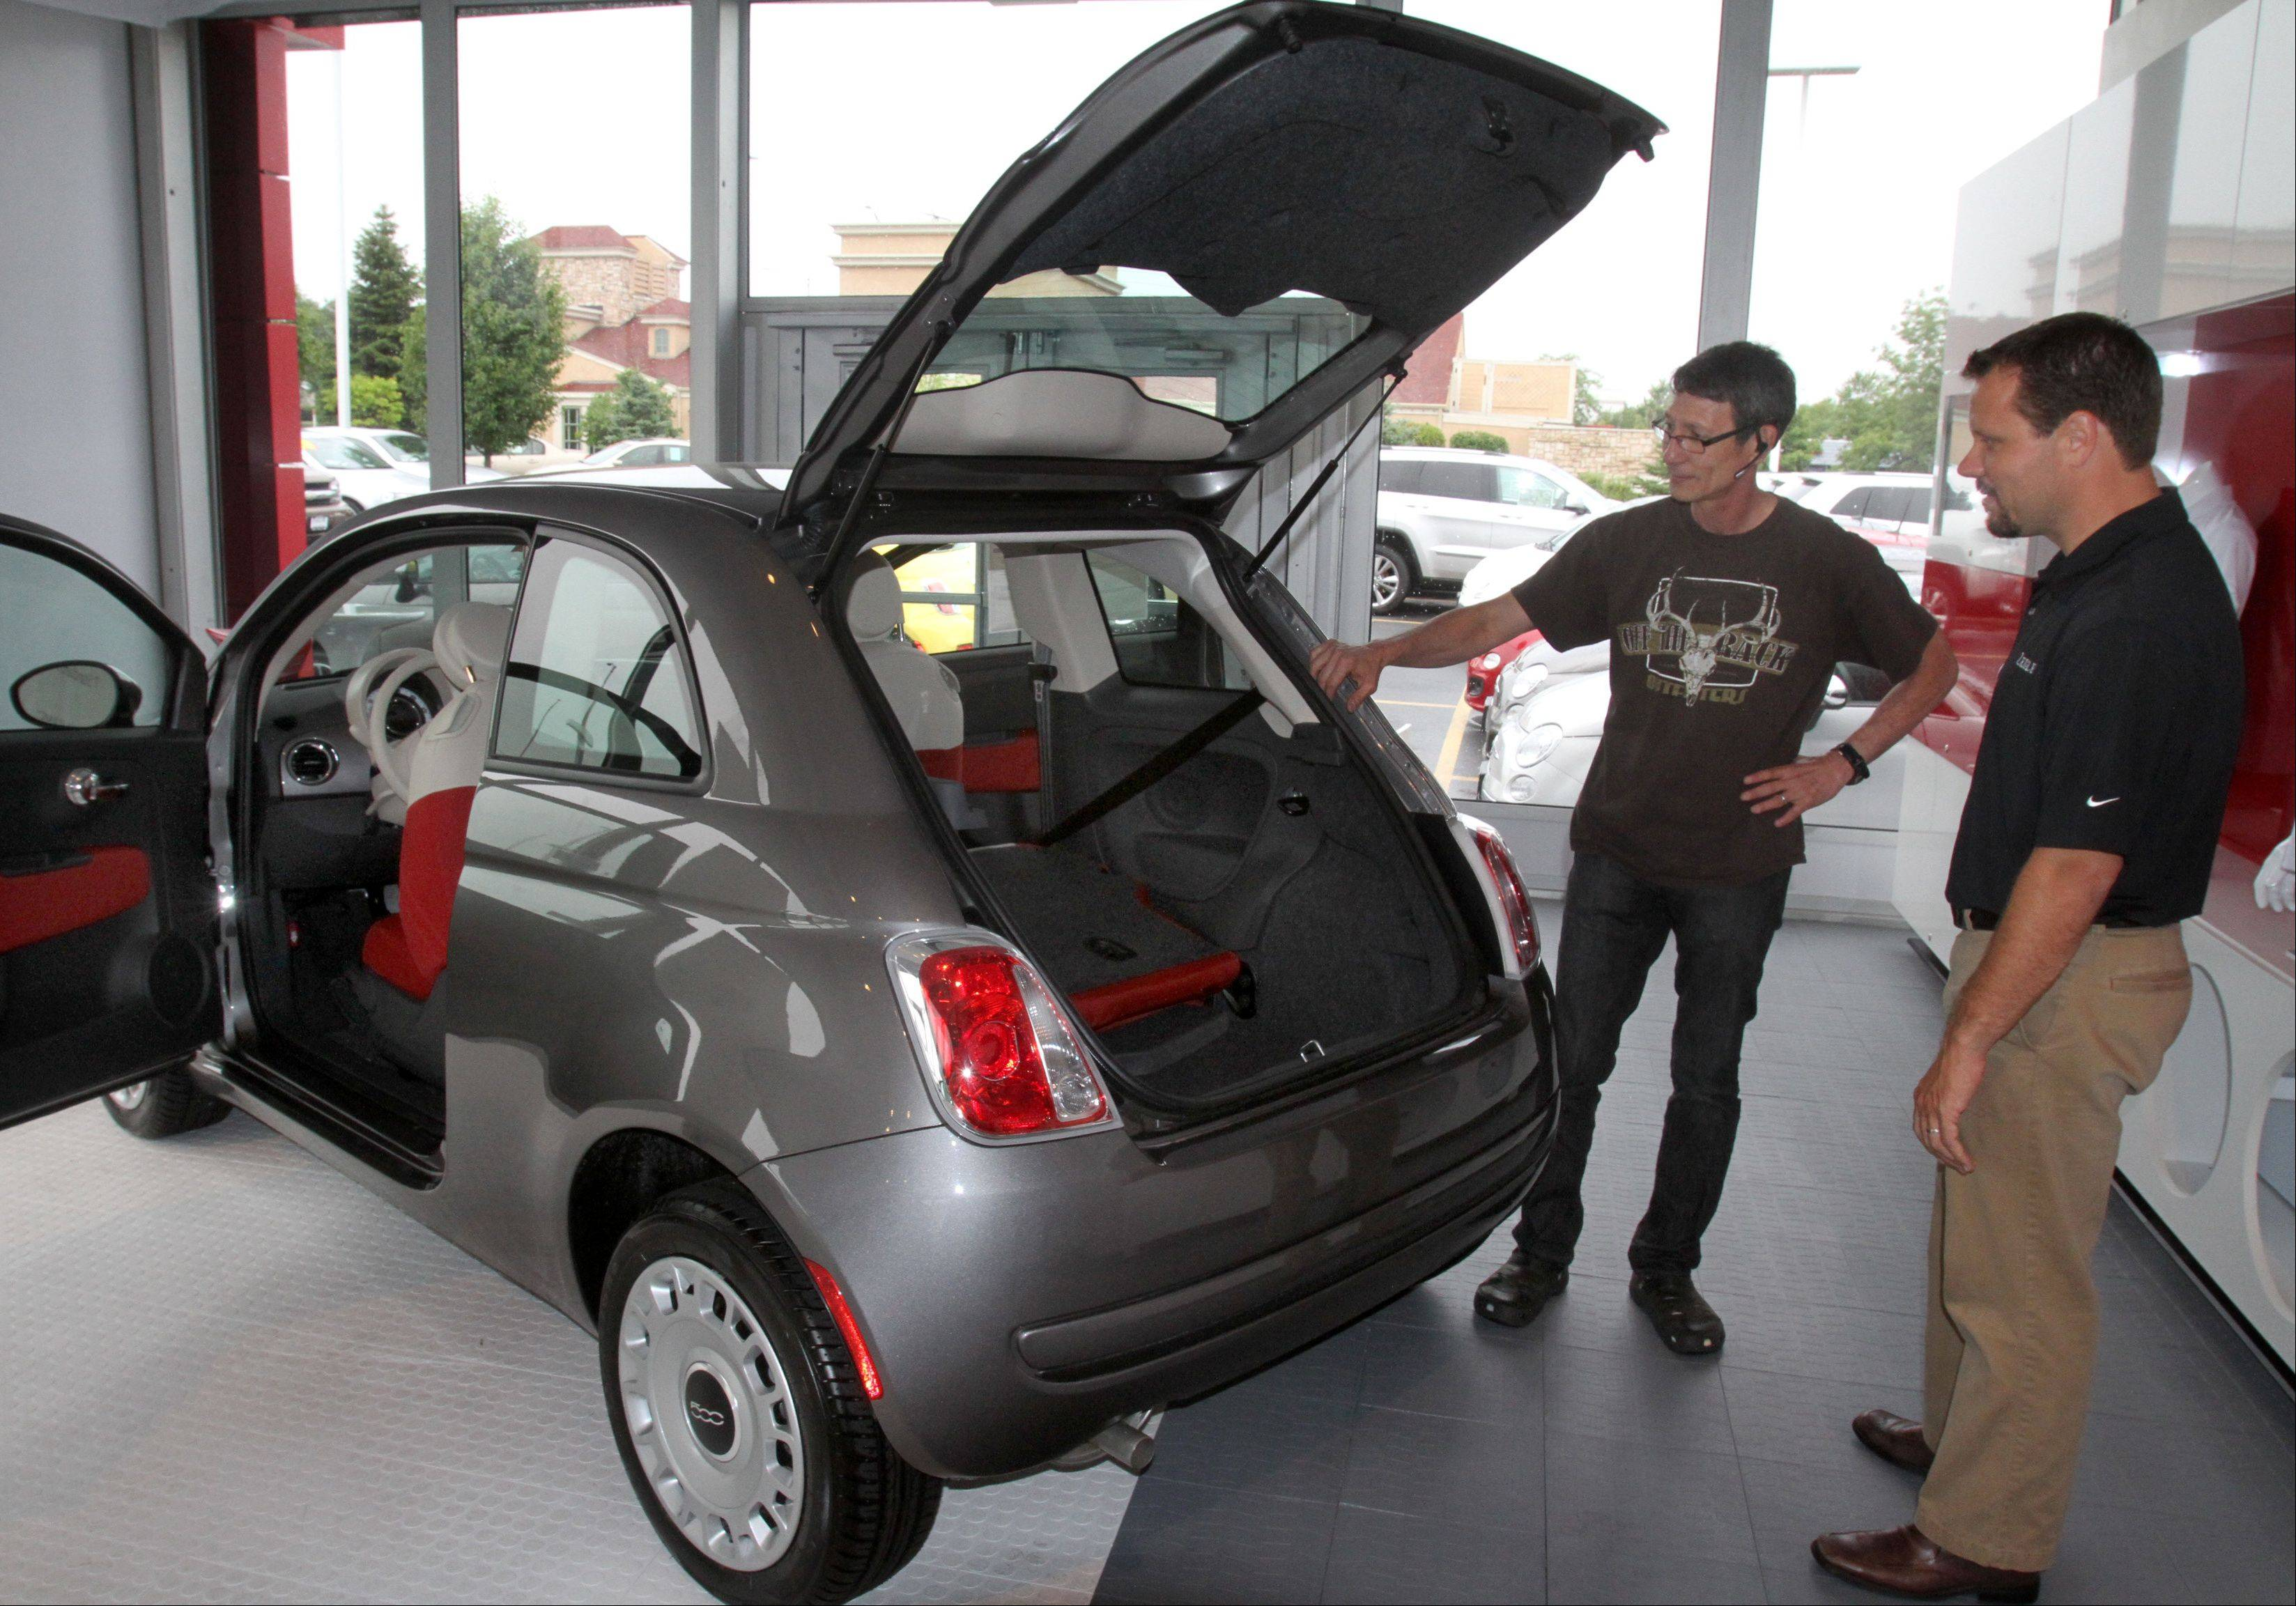 Jeff Nemcher, sales associate at Zeigler Chrysler Dodge Jeep, shows Wesley Hawk of Bartlett the 2012 Fiat 500 Pop car in the dealership's showroom in Schaumburg on Wednesday. The dealership was chosen to help reintroduce the Fiat brand to the U.S. market.